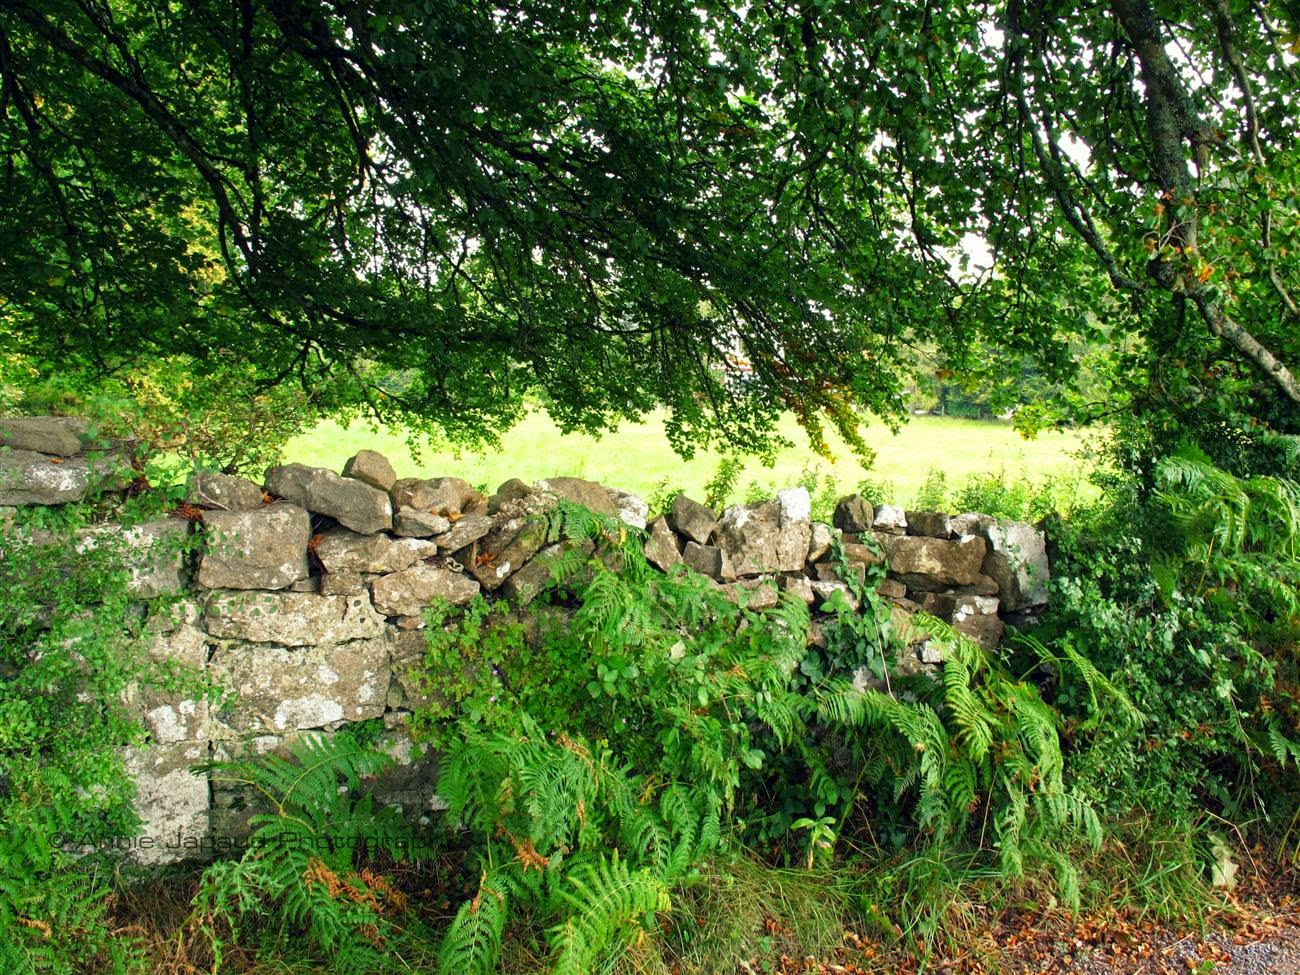 stone wall, green leaves and trees